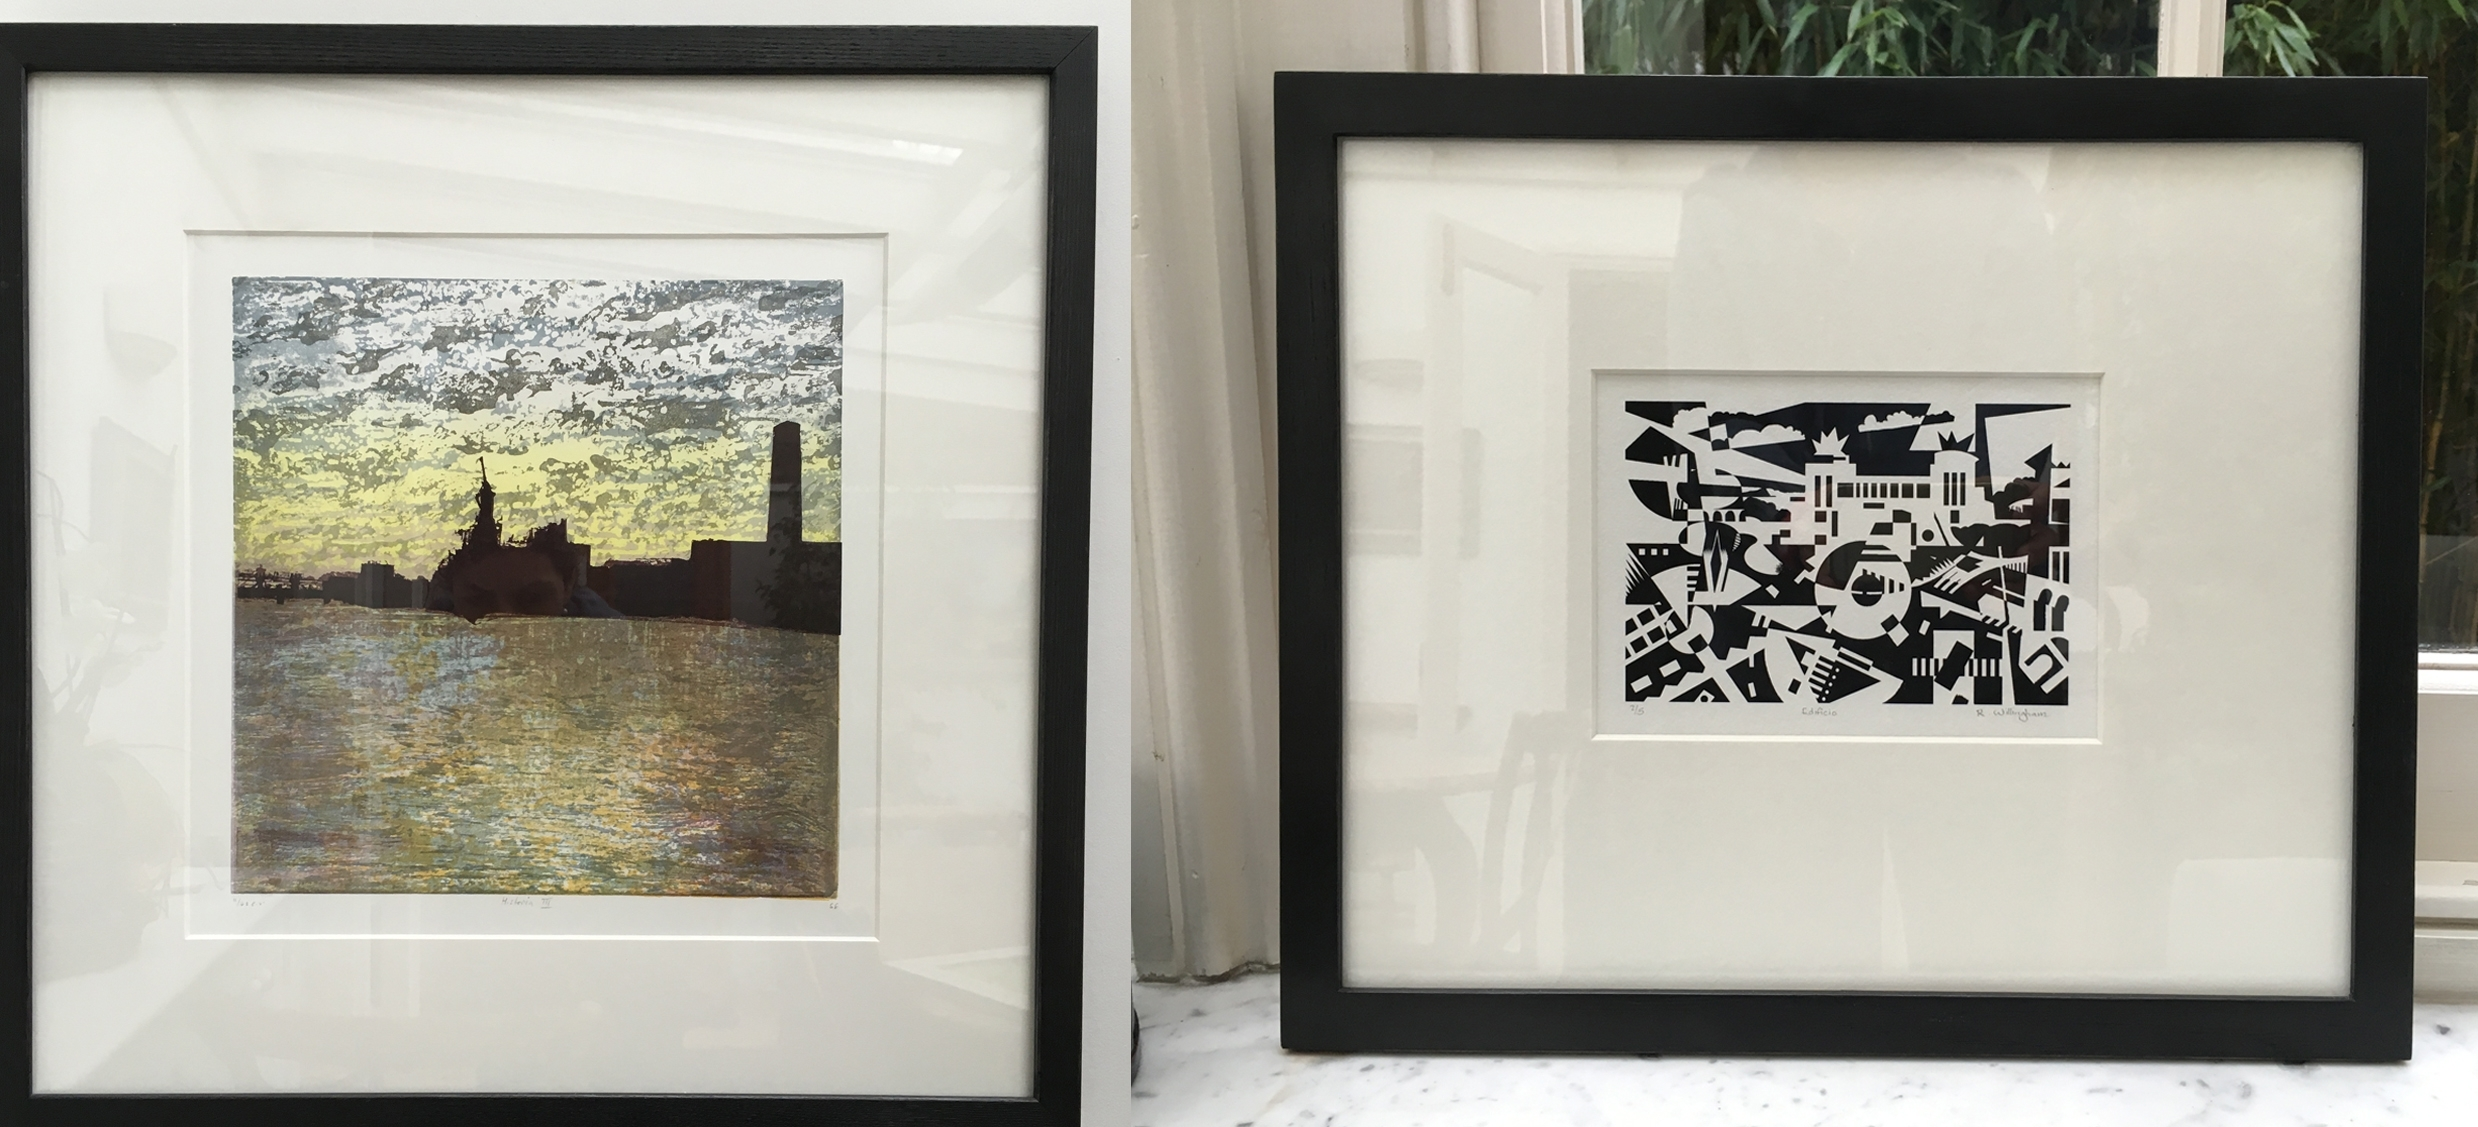 How To Frame Prints – Print Solo Regarding Recent Black Framed Art Prints (Gallery 5 of 15)